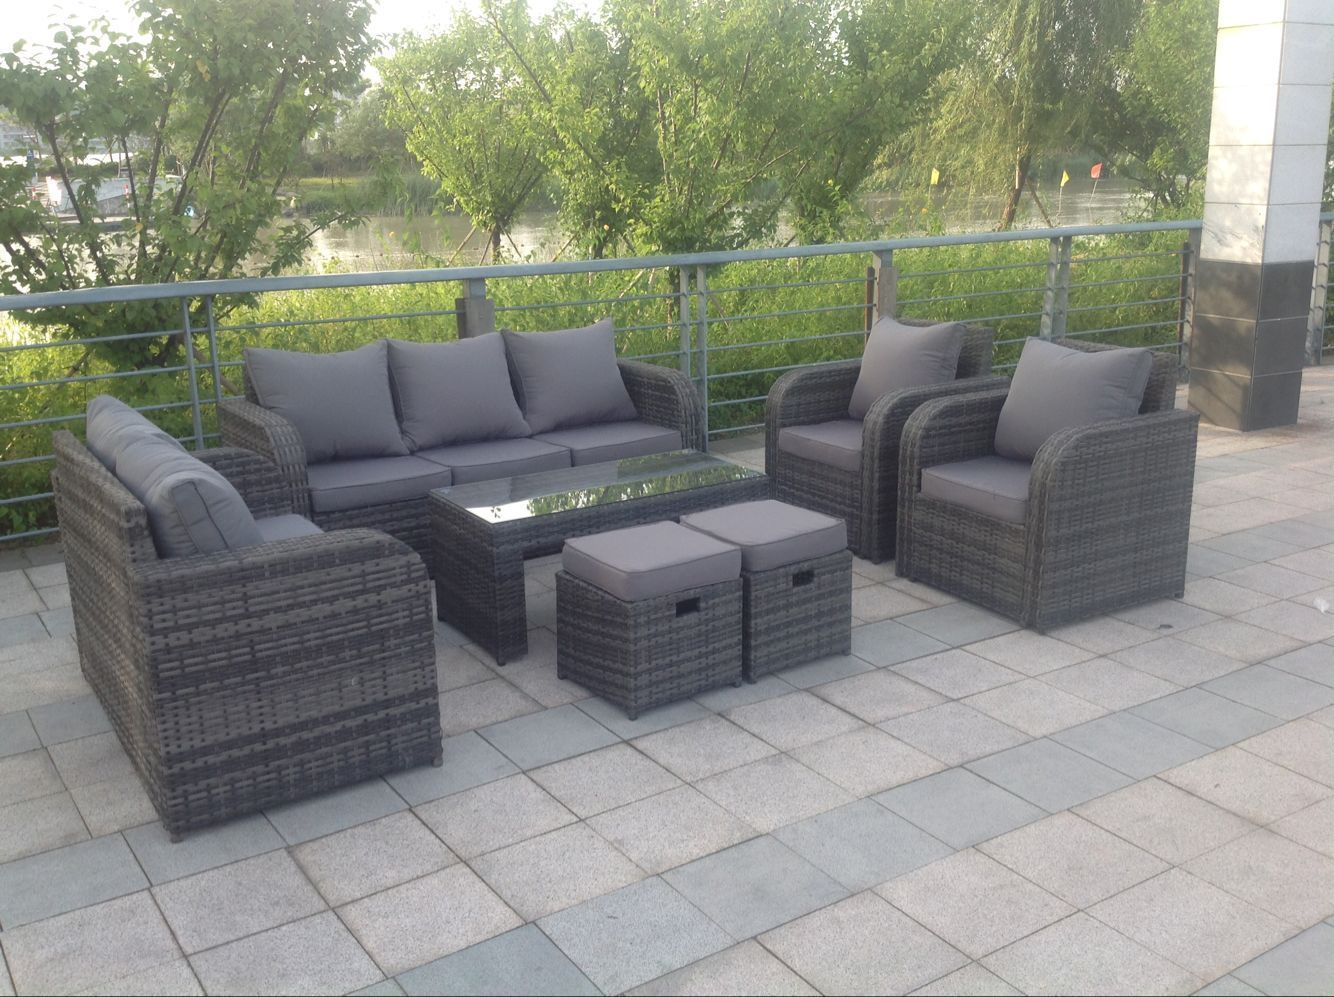 Grey Rattan Garden Furniture Set Sofa Reclining Chairs Conservatory Outdoor Ebay Rattan Garden Furniture Grey Rattan Garden Furniture Garden Sofa Set